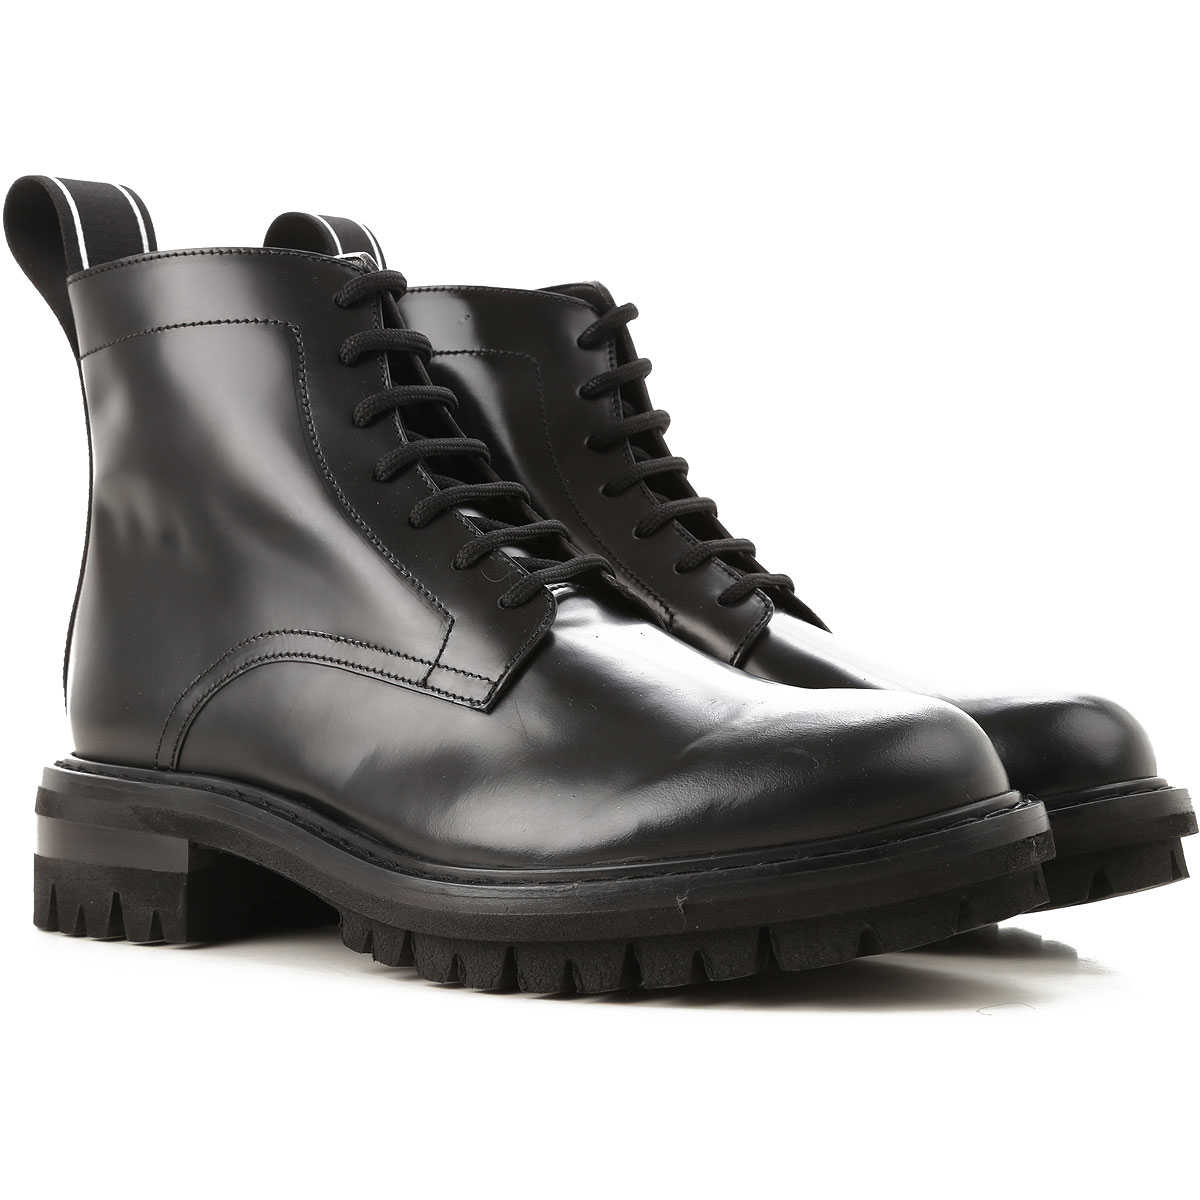 Dsquared2 Boots for Men, Booties, Black